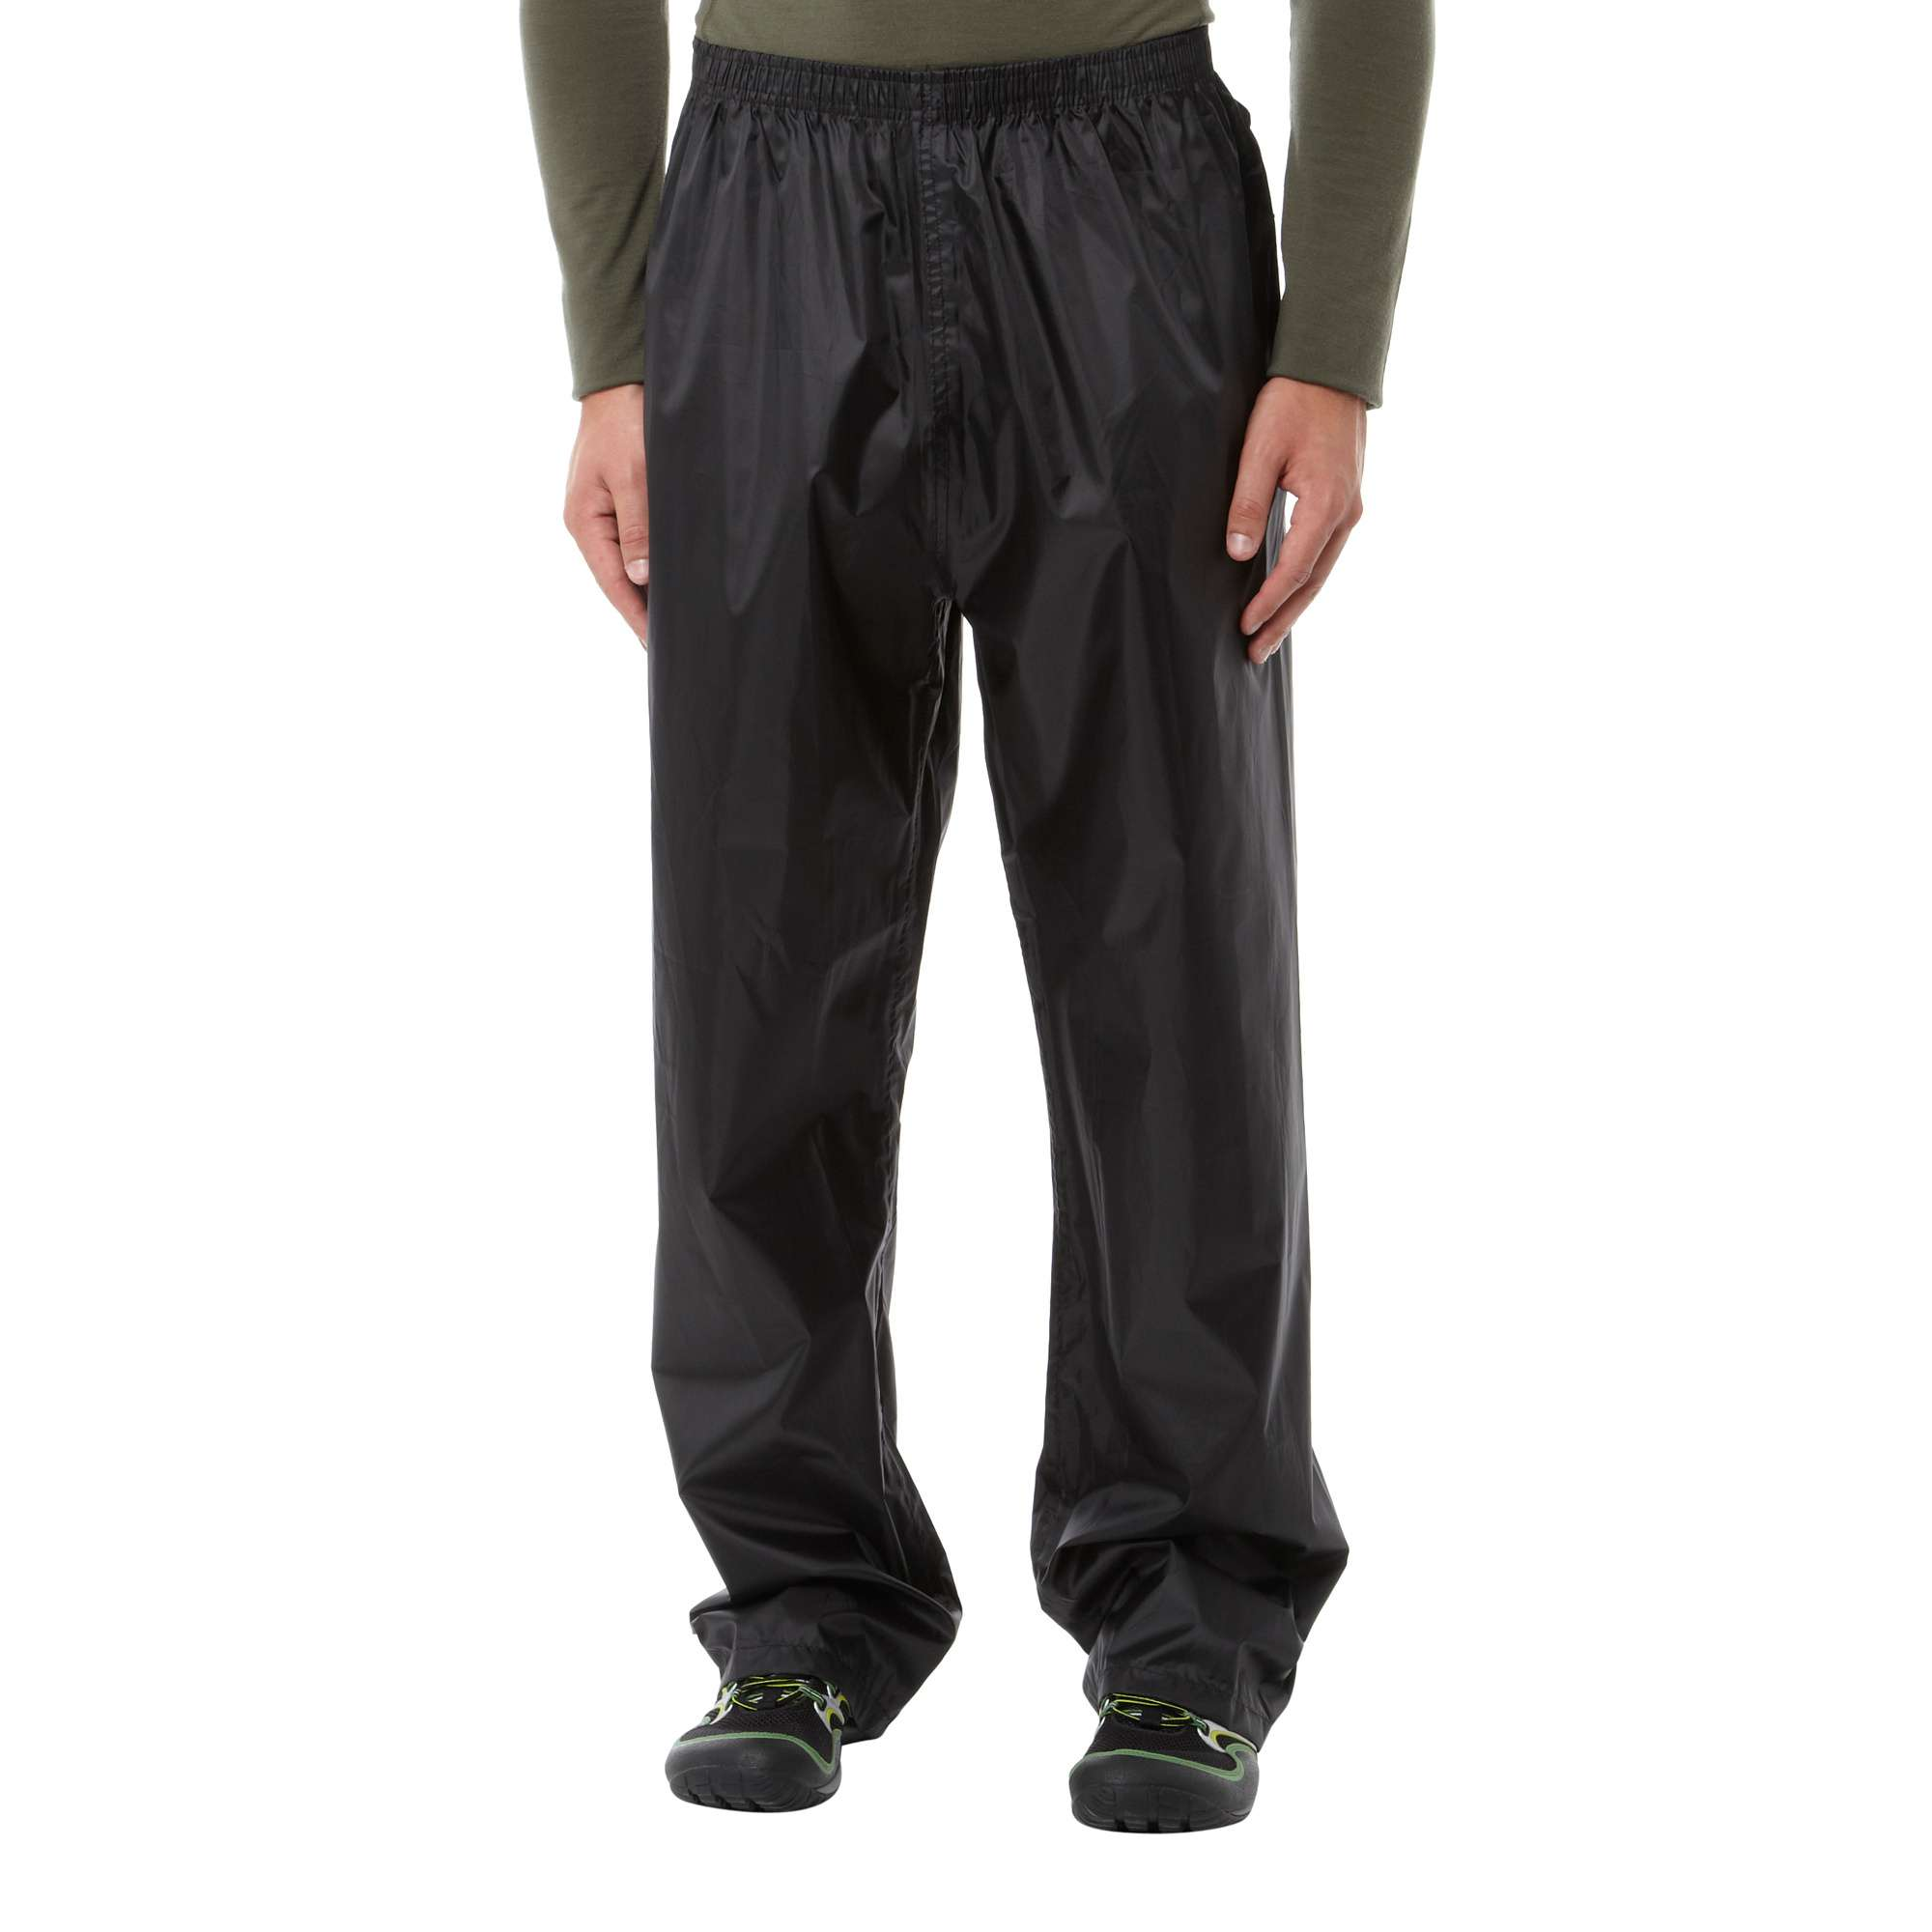 PETER STORM Men's Pack- Away Trousers